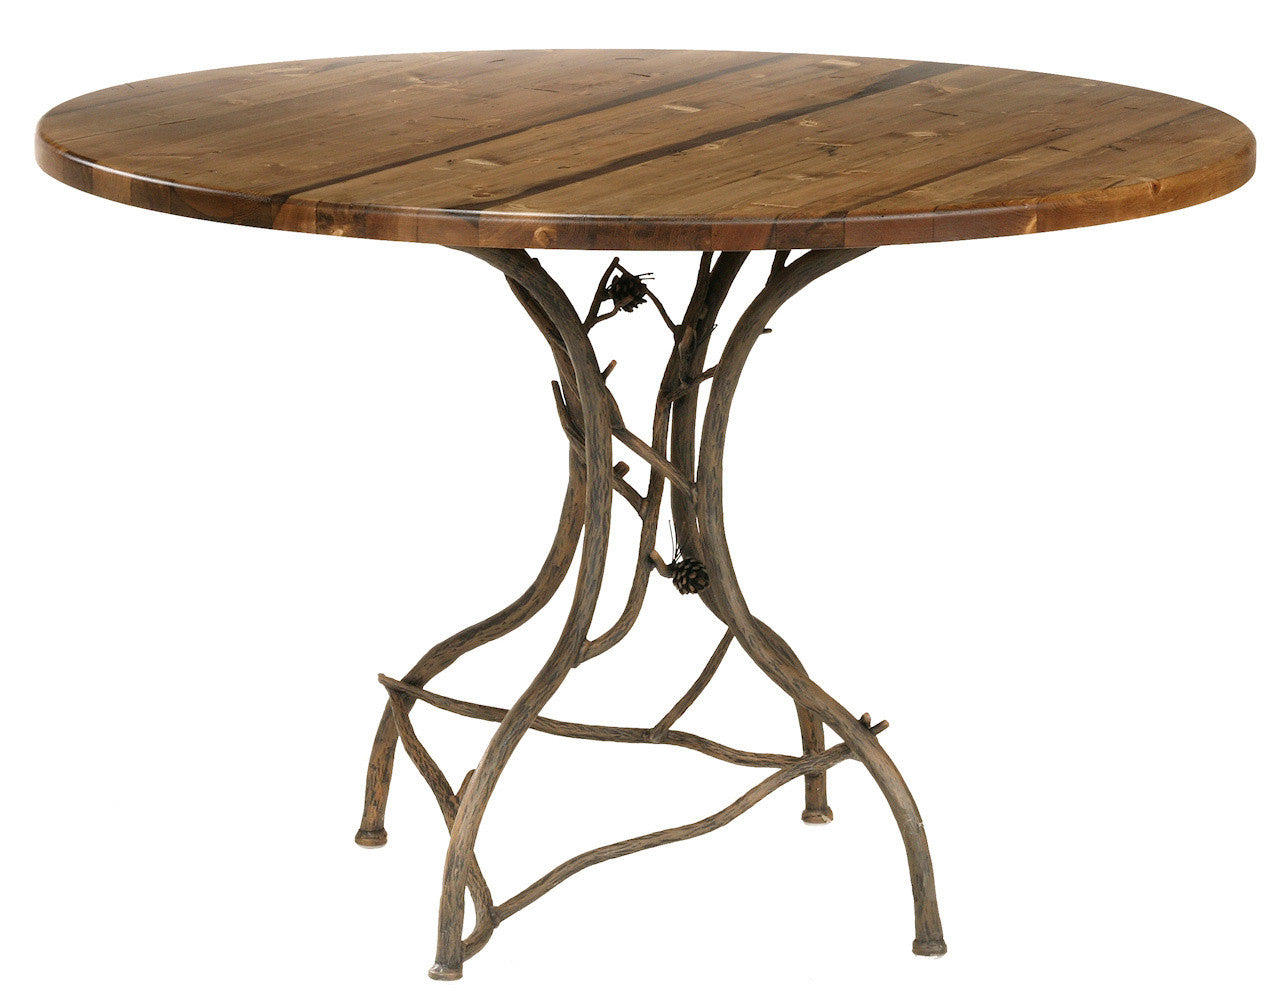 Breakfast Table Round Natural Bark Pine - Stone County Table Image